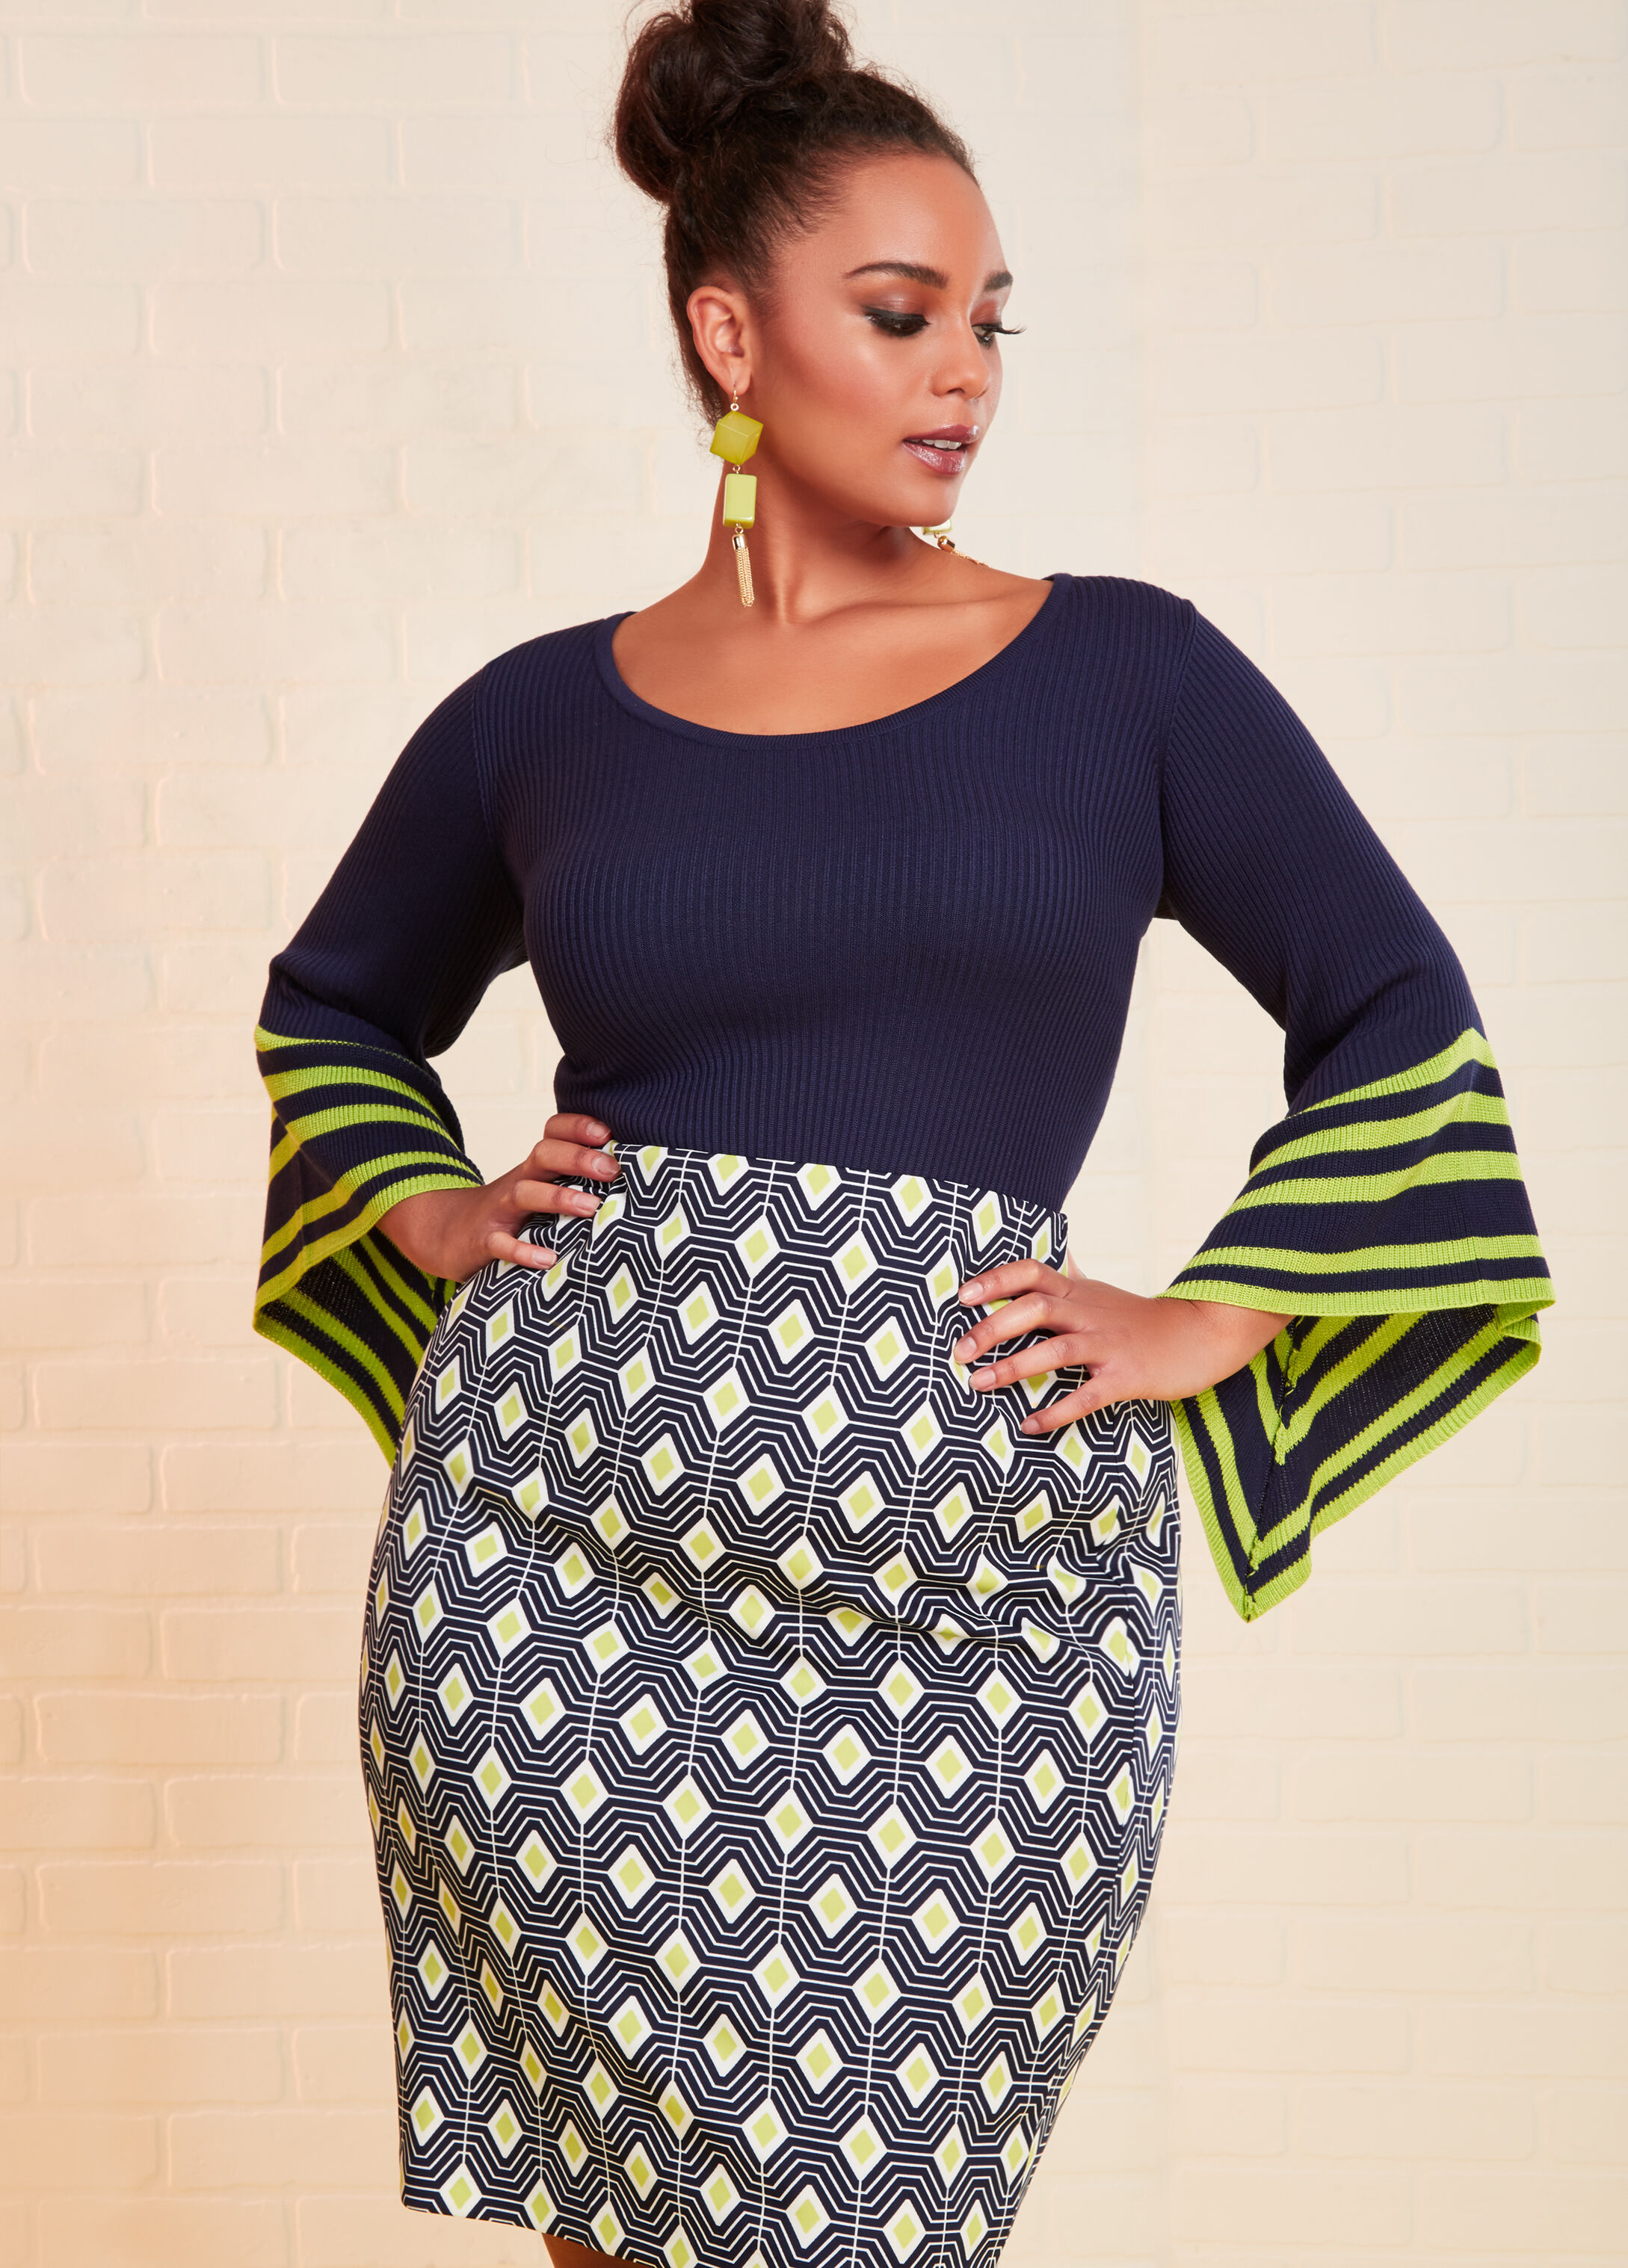 Plus Size Outfits - Striped Sleeve Sweater with Diamond Printed Skirt